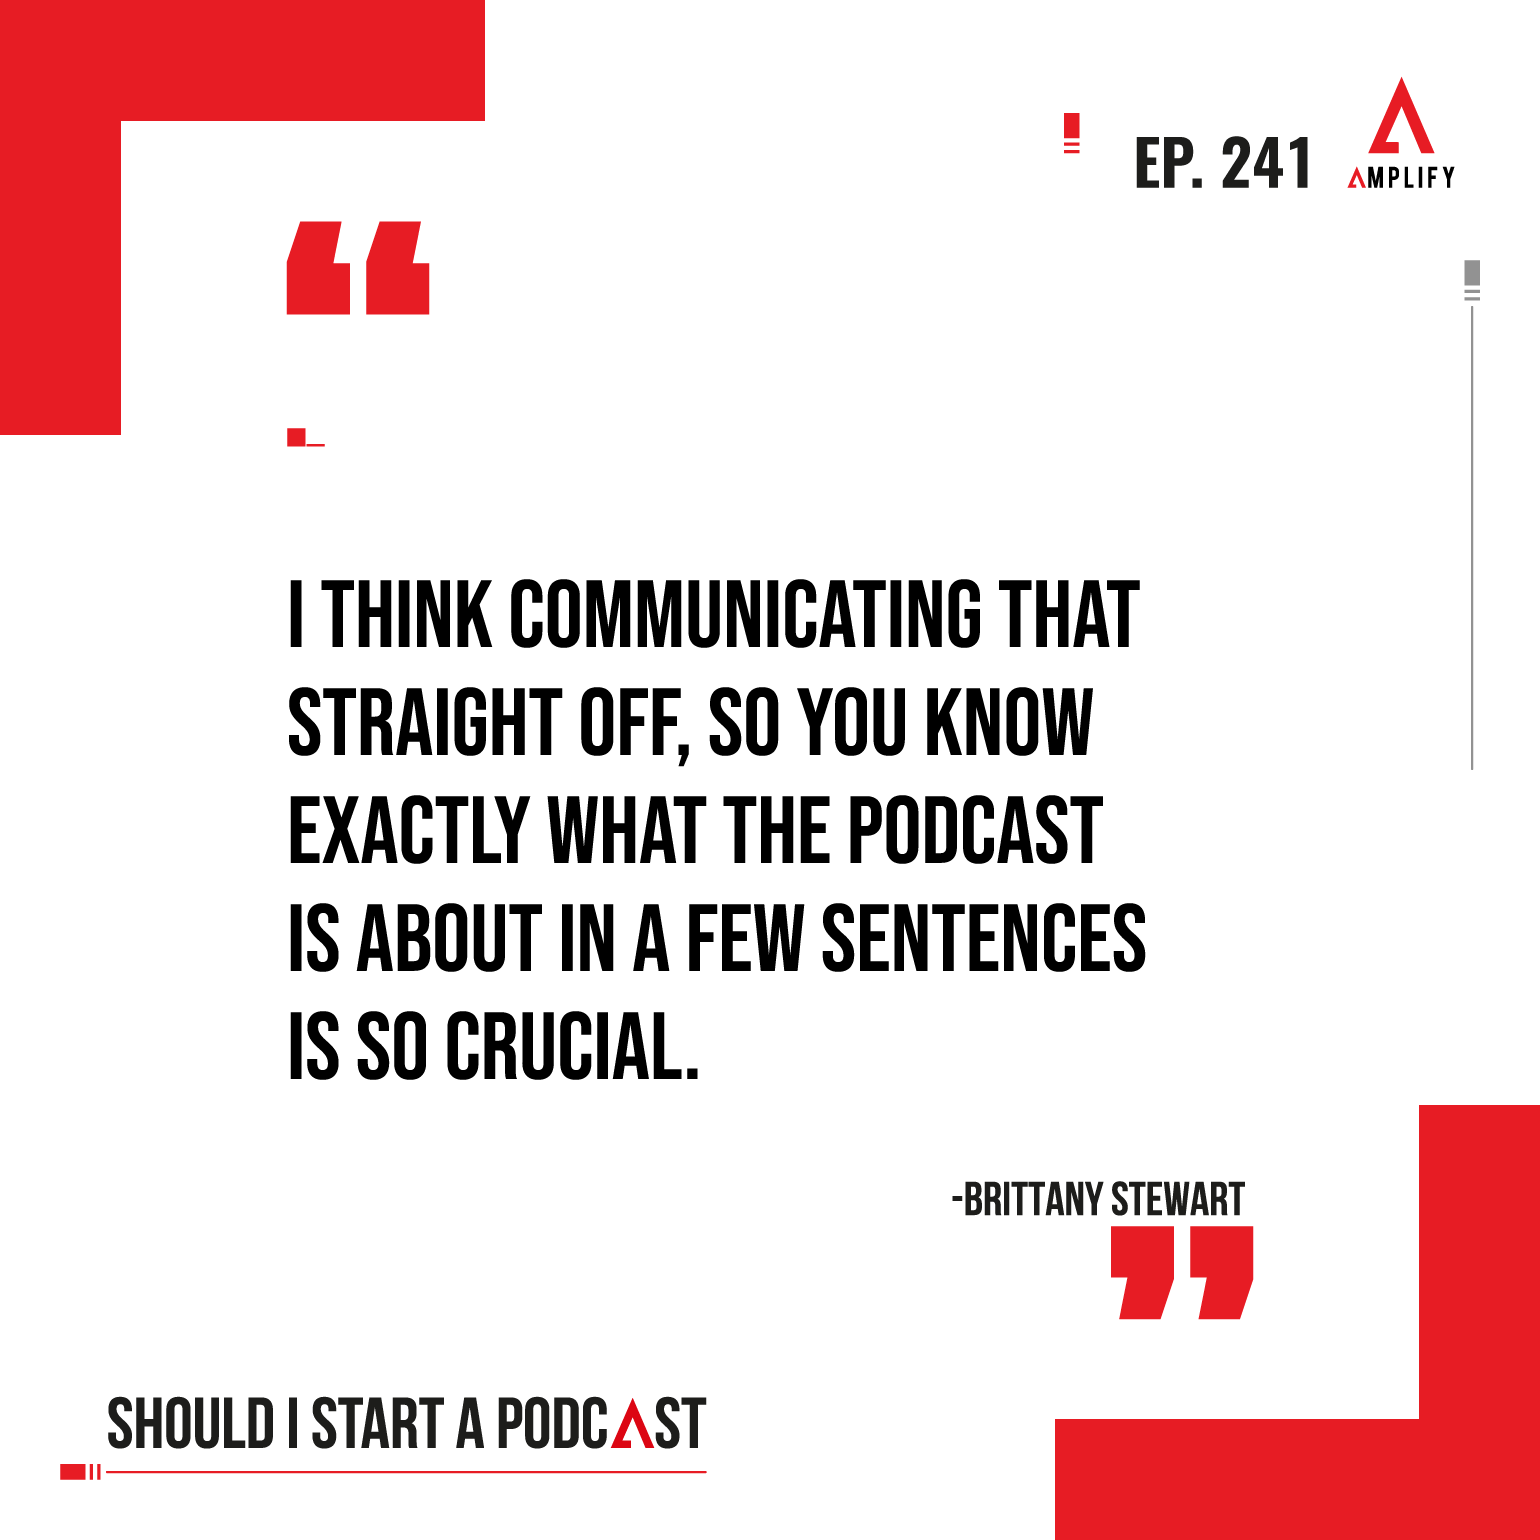 Quote: I think communicating that straight off, so you know exactly what the podcast is about in a few sentences is so crucial.